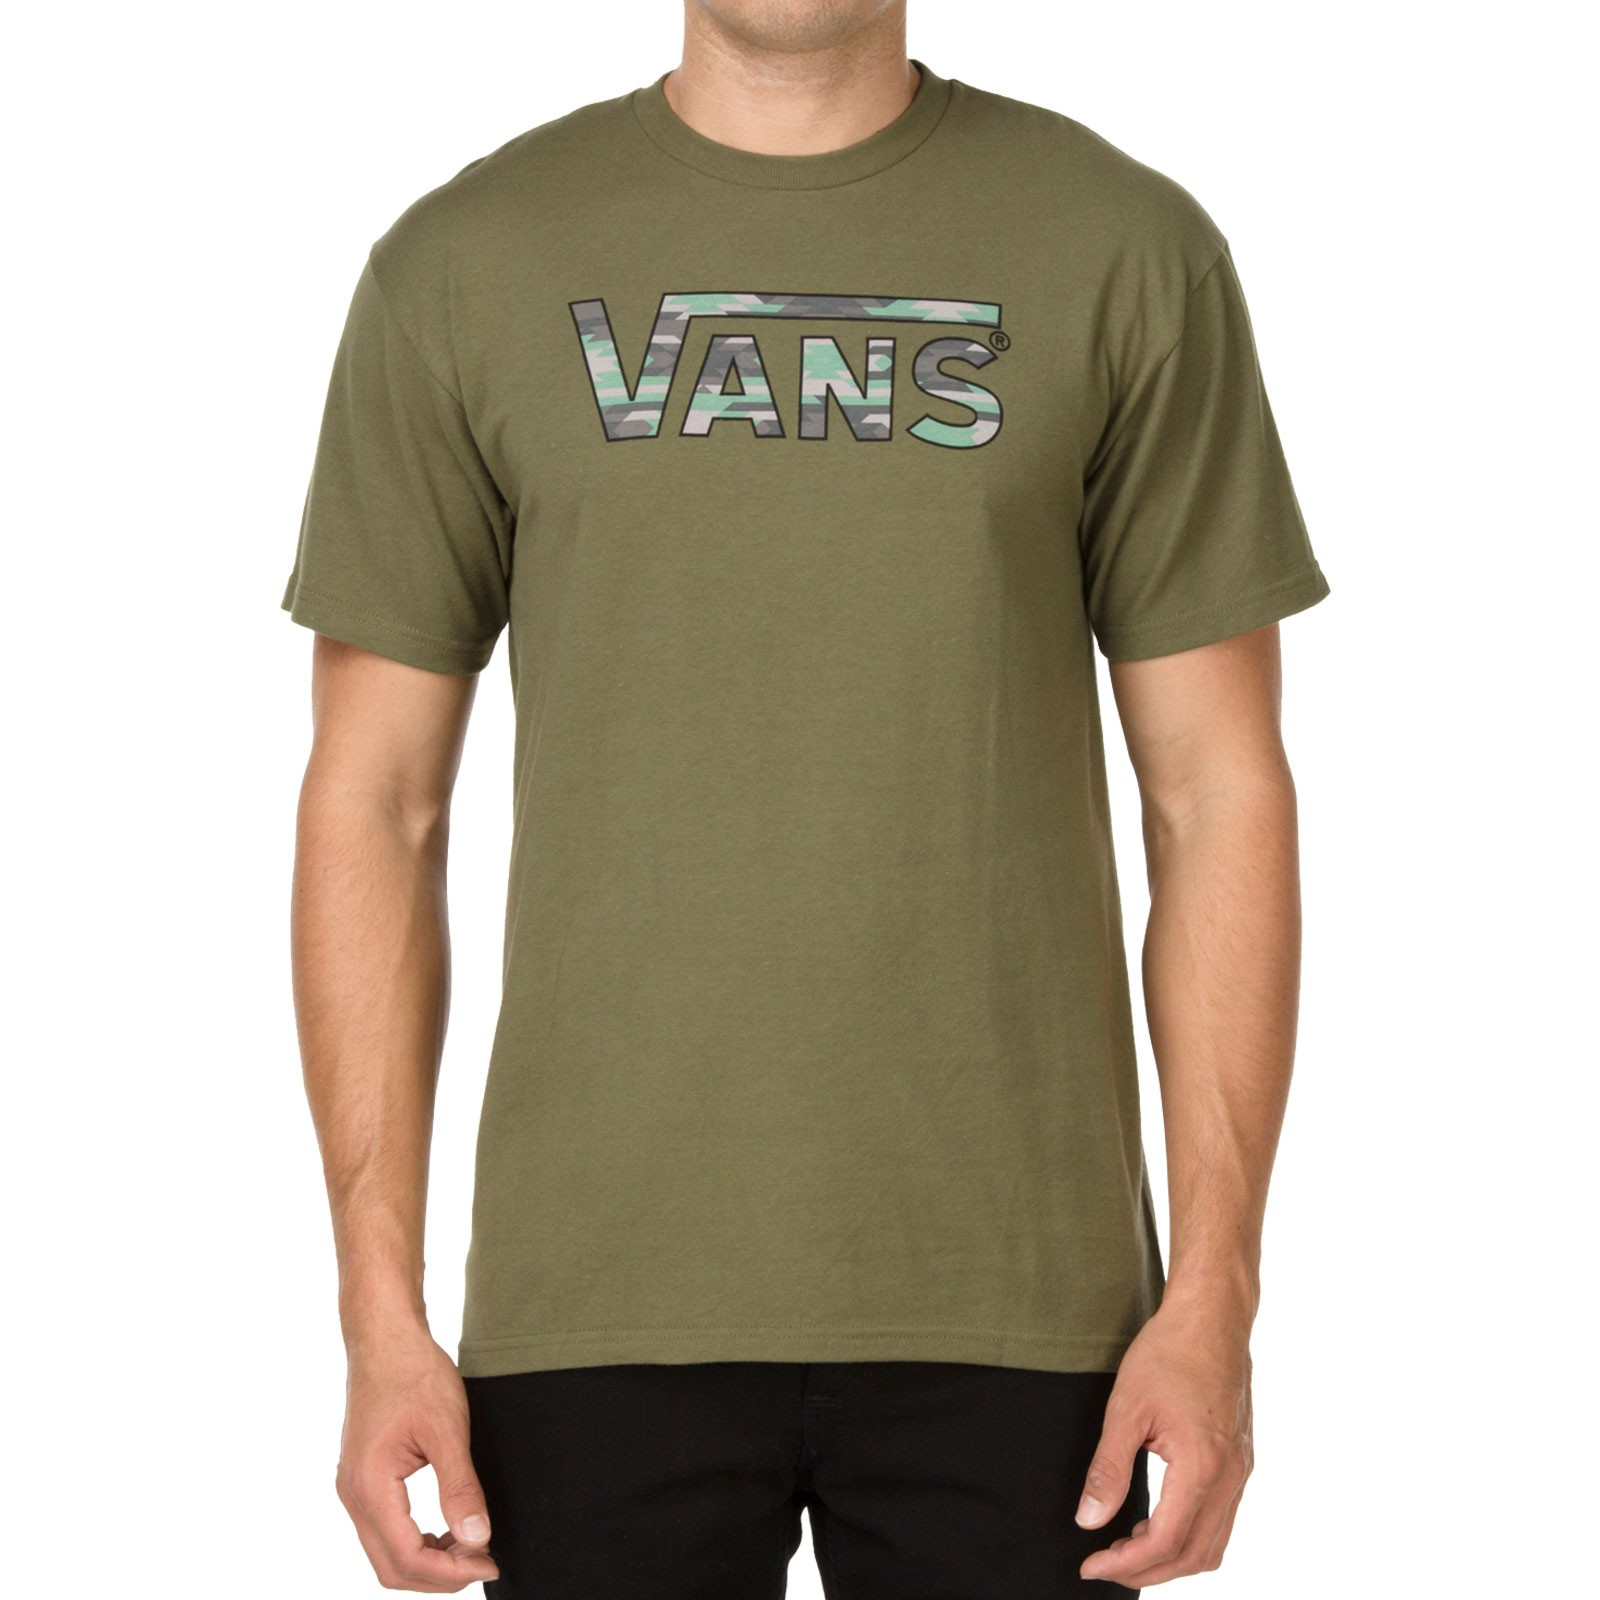 Vans Classic Fill T-Shirt - Military Green / Native Camo